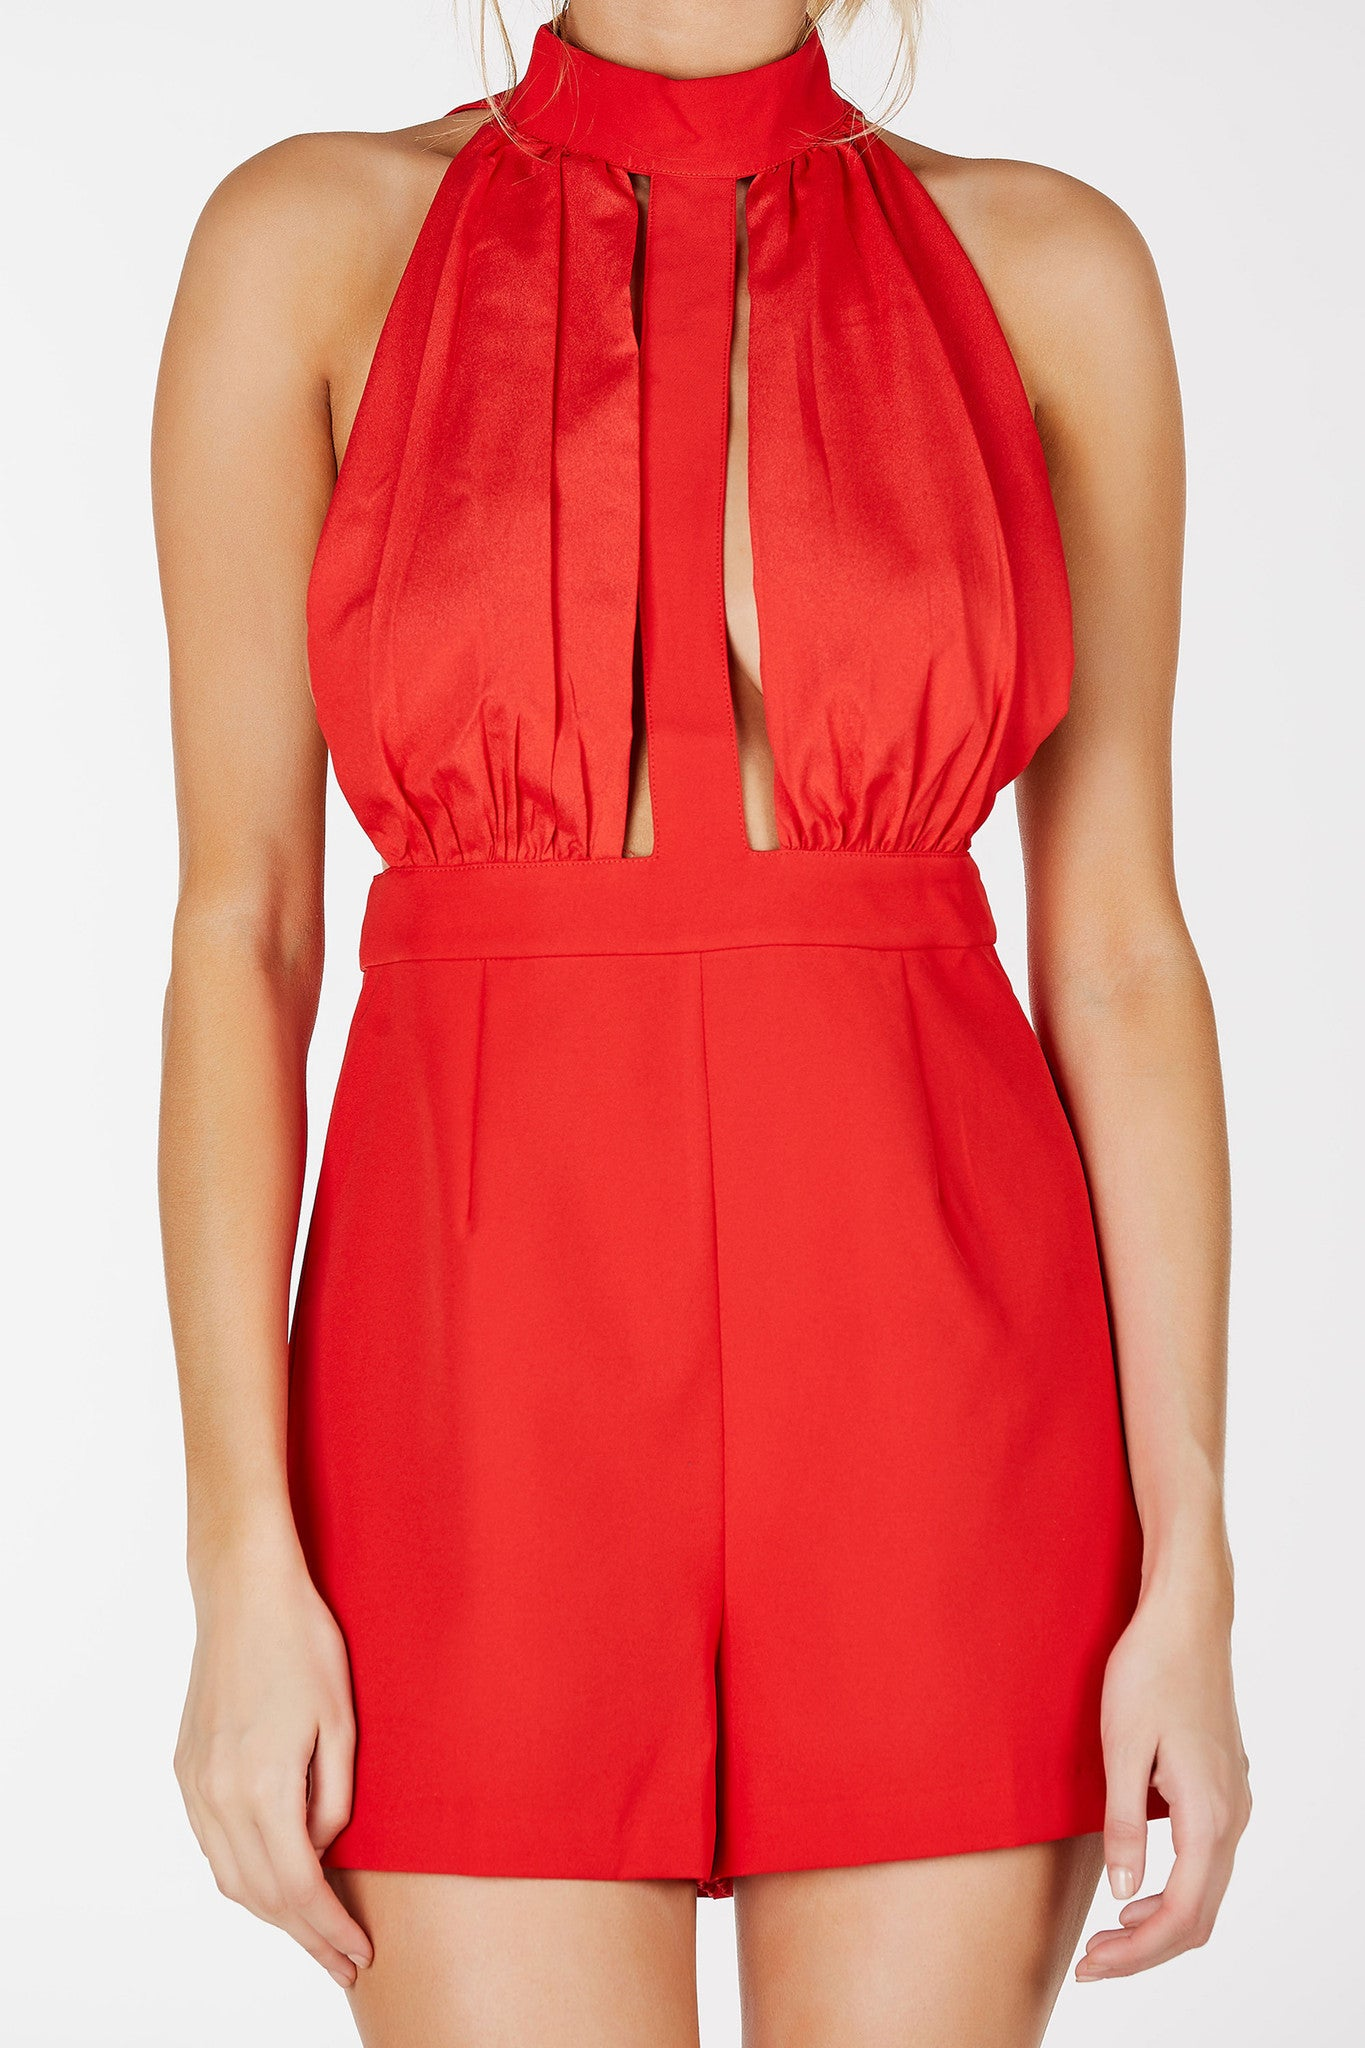 Halter style romper with mock neckline. Pleated body with cut outs in both front and back. Hook and eye clasps and hidden zip closure.